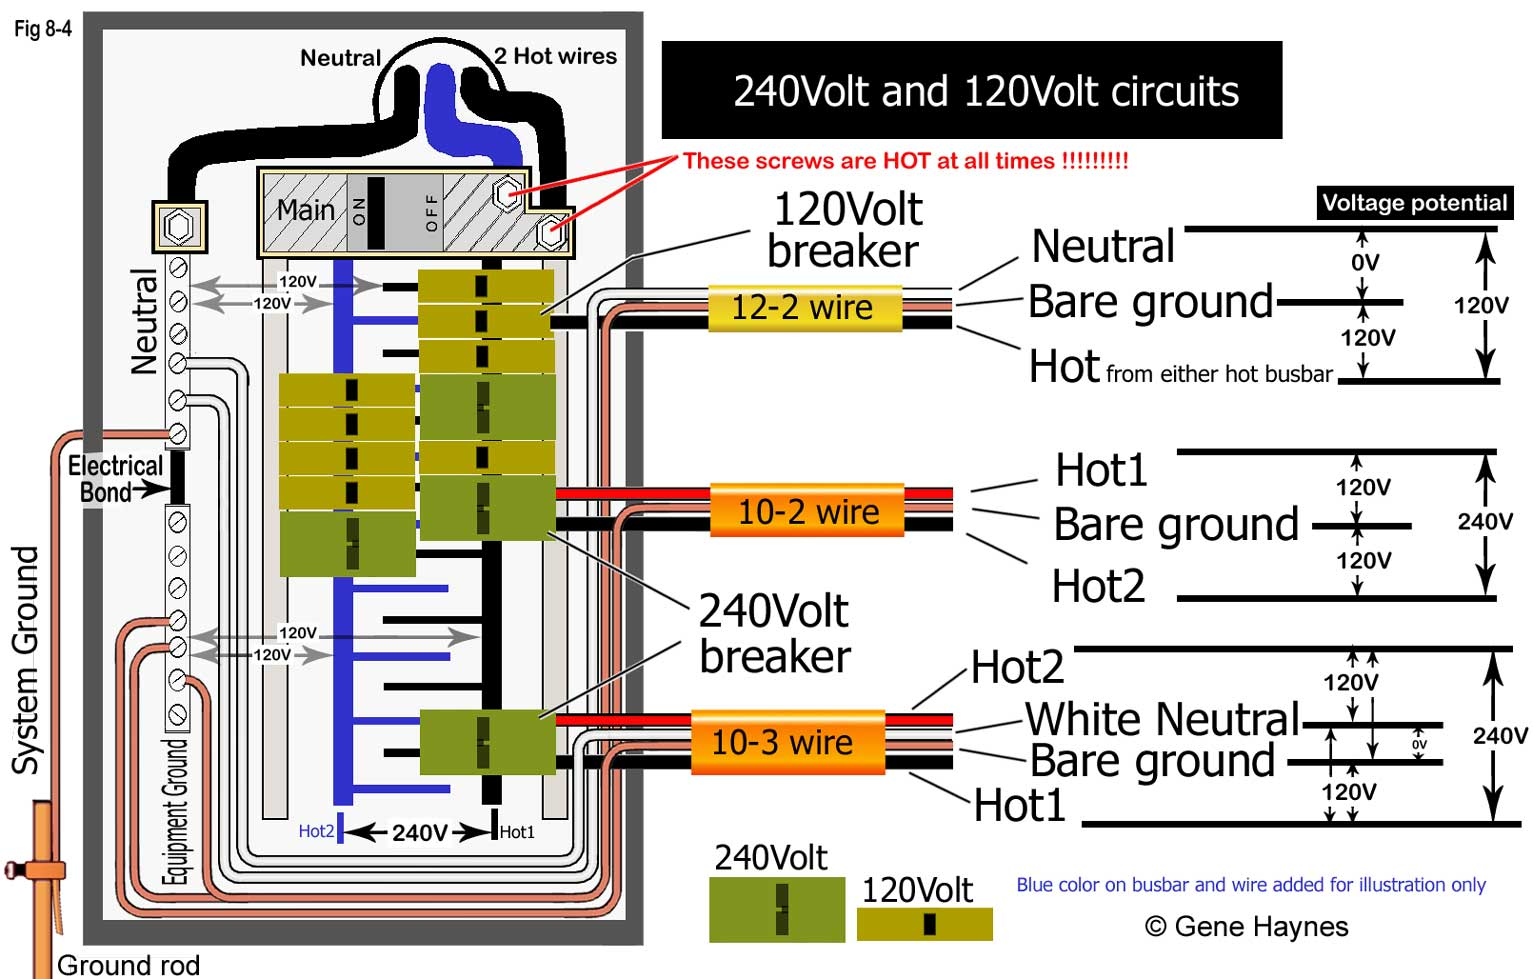 How To Electrical Outlet Wiring Diagram moreover 202027001 in addition Outlet Wiring Diagram Series further Wiring Diagram 2 Pole Gfci Breaker 3 in addition Outlet To Switch To Light Wiring Diagram. on gfci wiring multiple outlets diagram